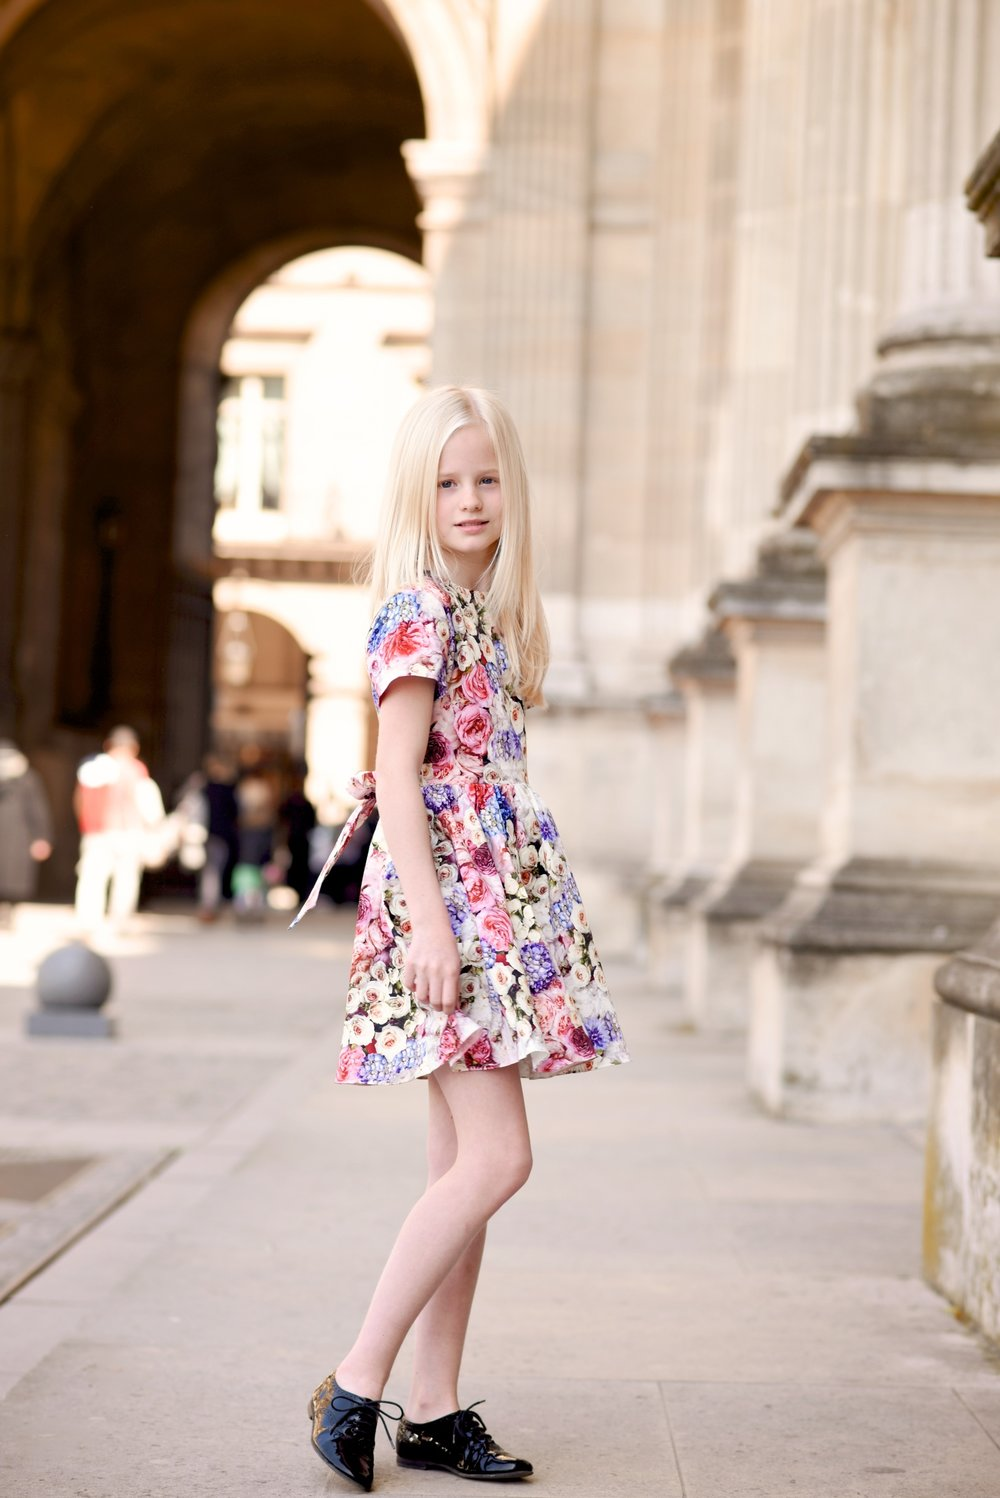 Enfant+Street+Style+by+Gina+Kim+Photography-14.jpeg